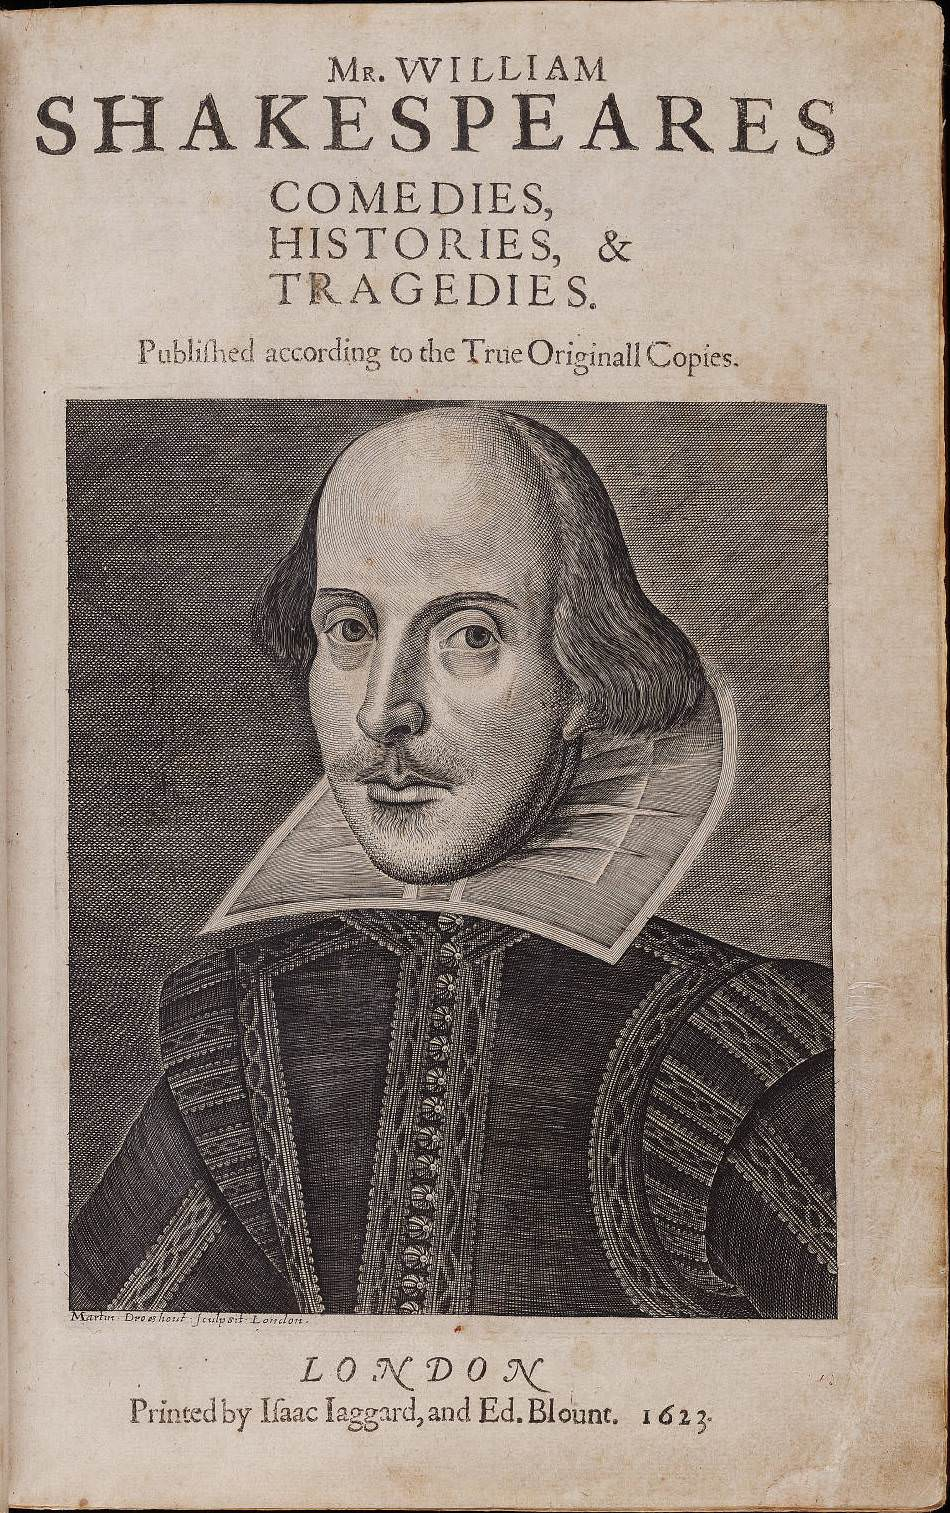 A portrait of William Shakespeare on the cover of the first Folio of his plays. Credit: Elizabethan Club of Yale University